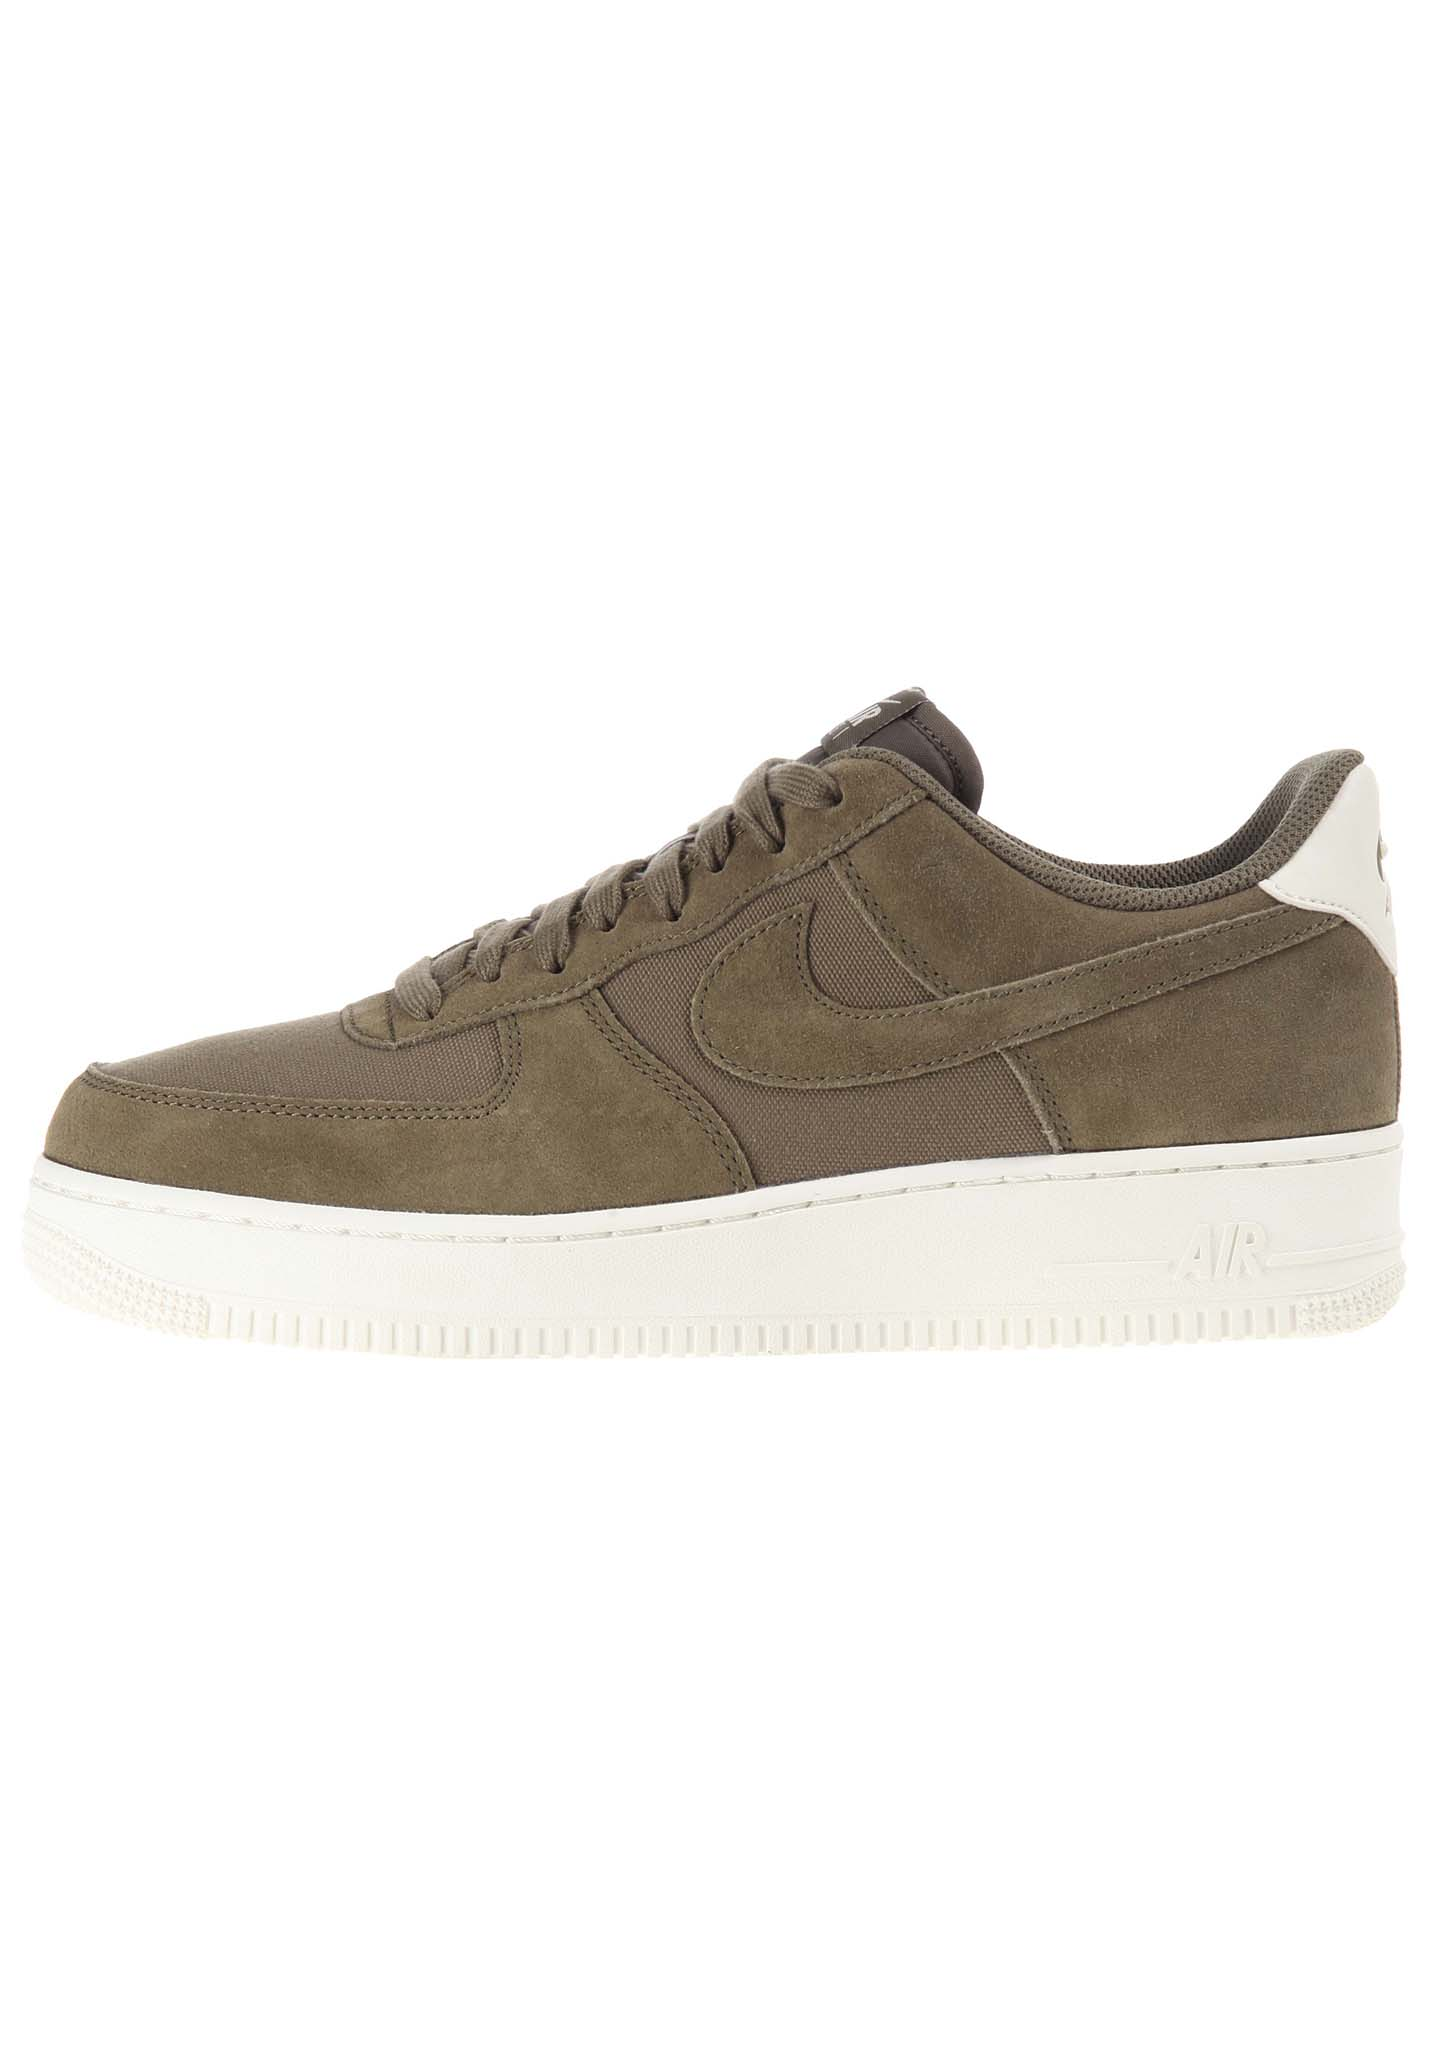 100% authentique d2670 802af NIKE SPORTSWEAR Air Force 1 '07 Suede - Baskets pour Homme - Vert